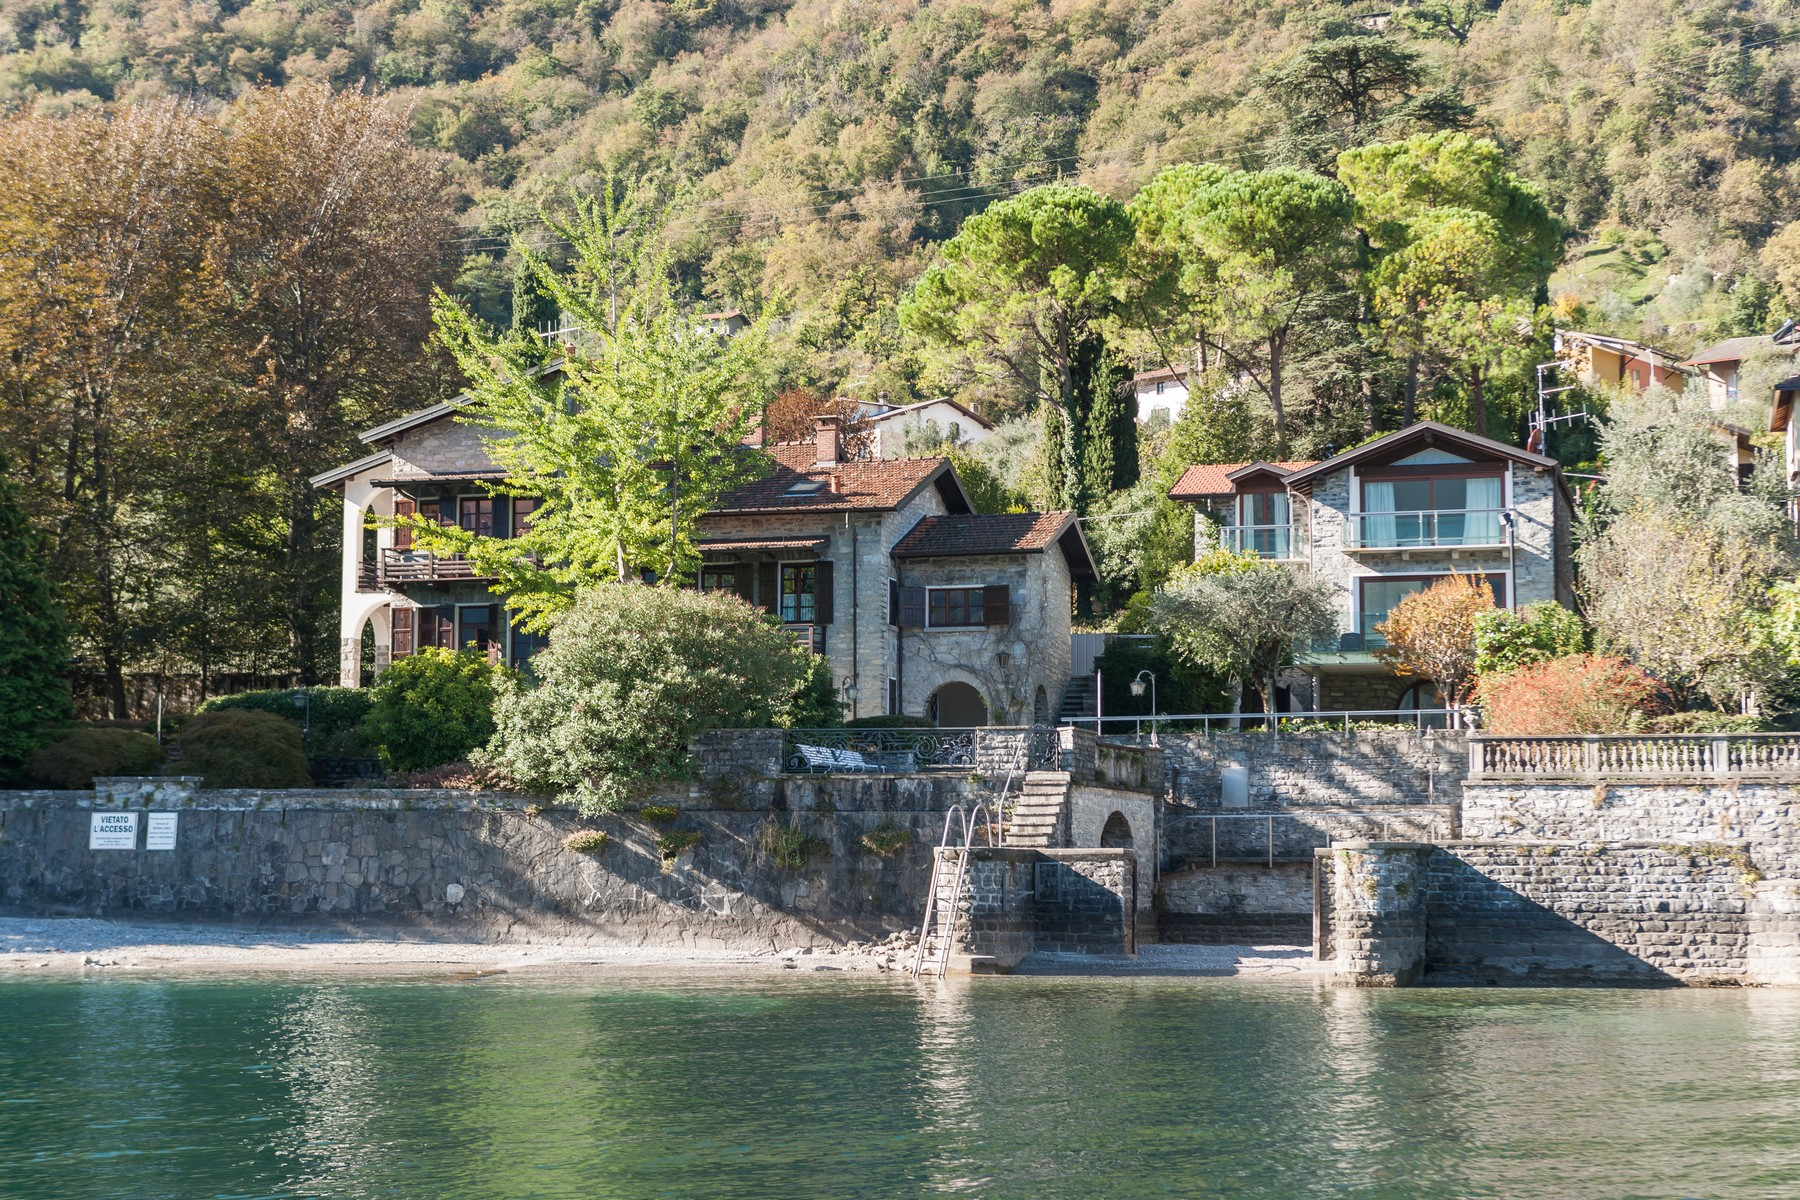 Single Family Home for Sale at Magnificent property pieds dans l'eau Via Cadorna Oliveto Lario, Lecco 23865 Italy